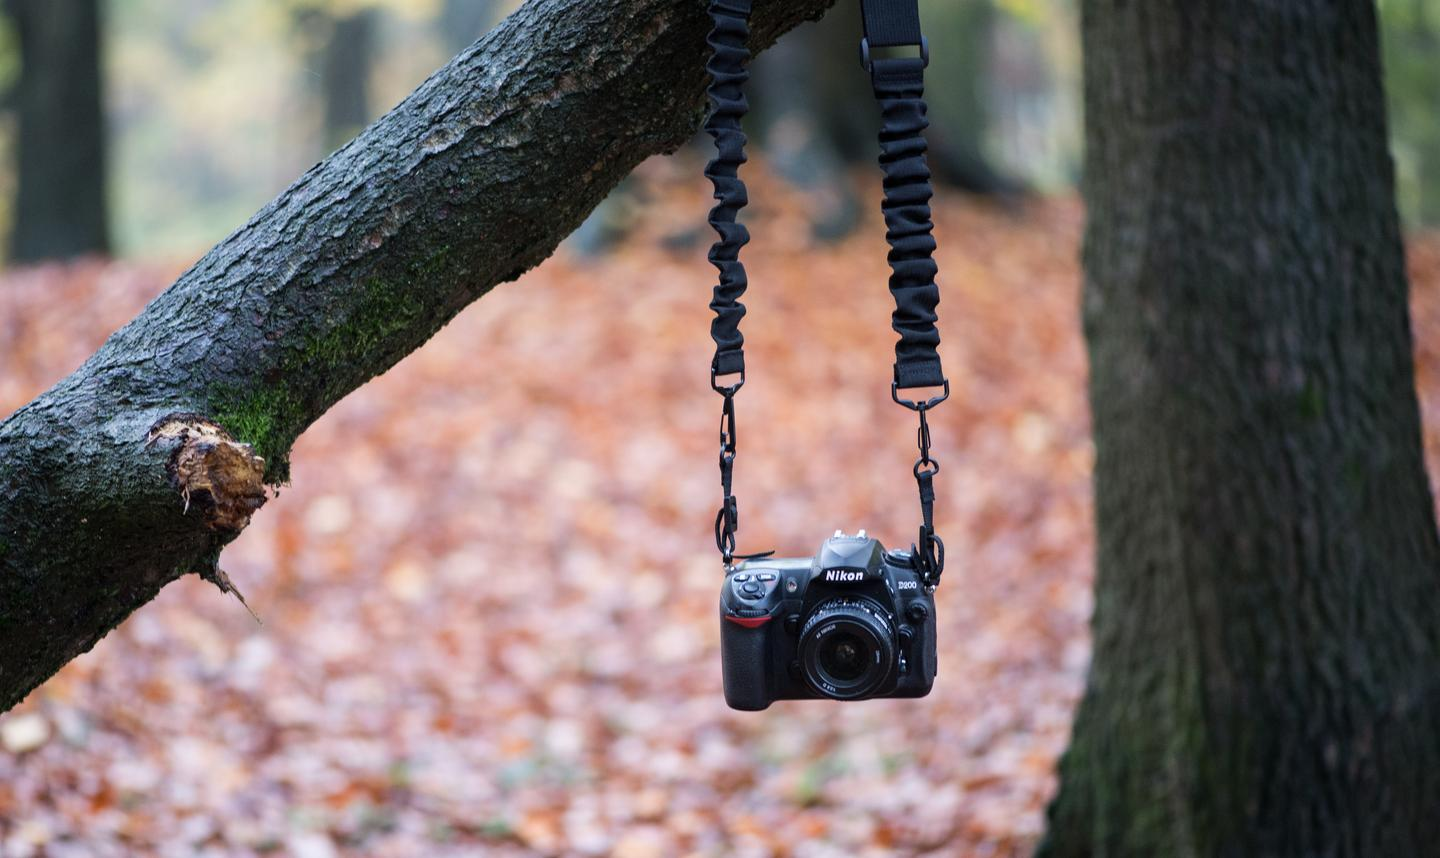 The Boomr camera strap uses an internal bungee cord system to maximize comfort